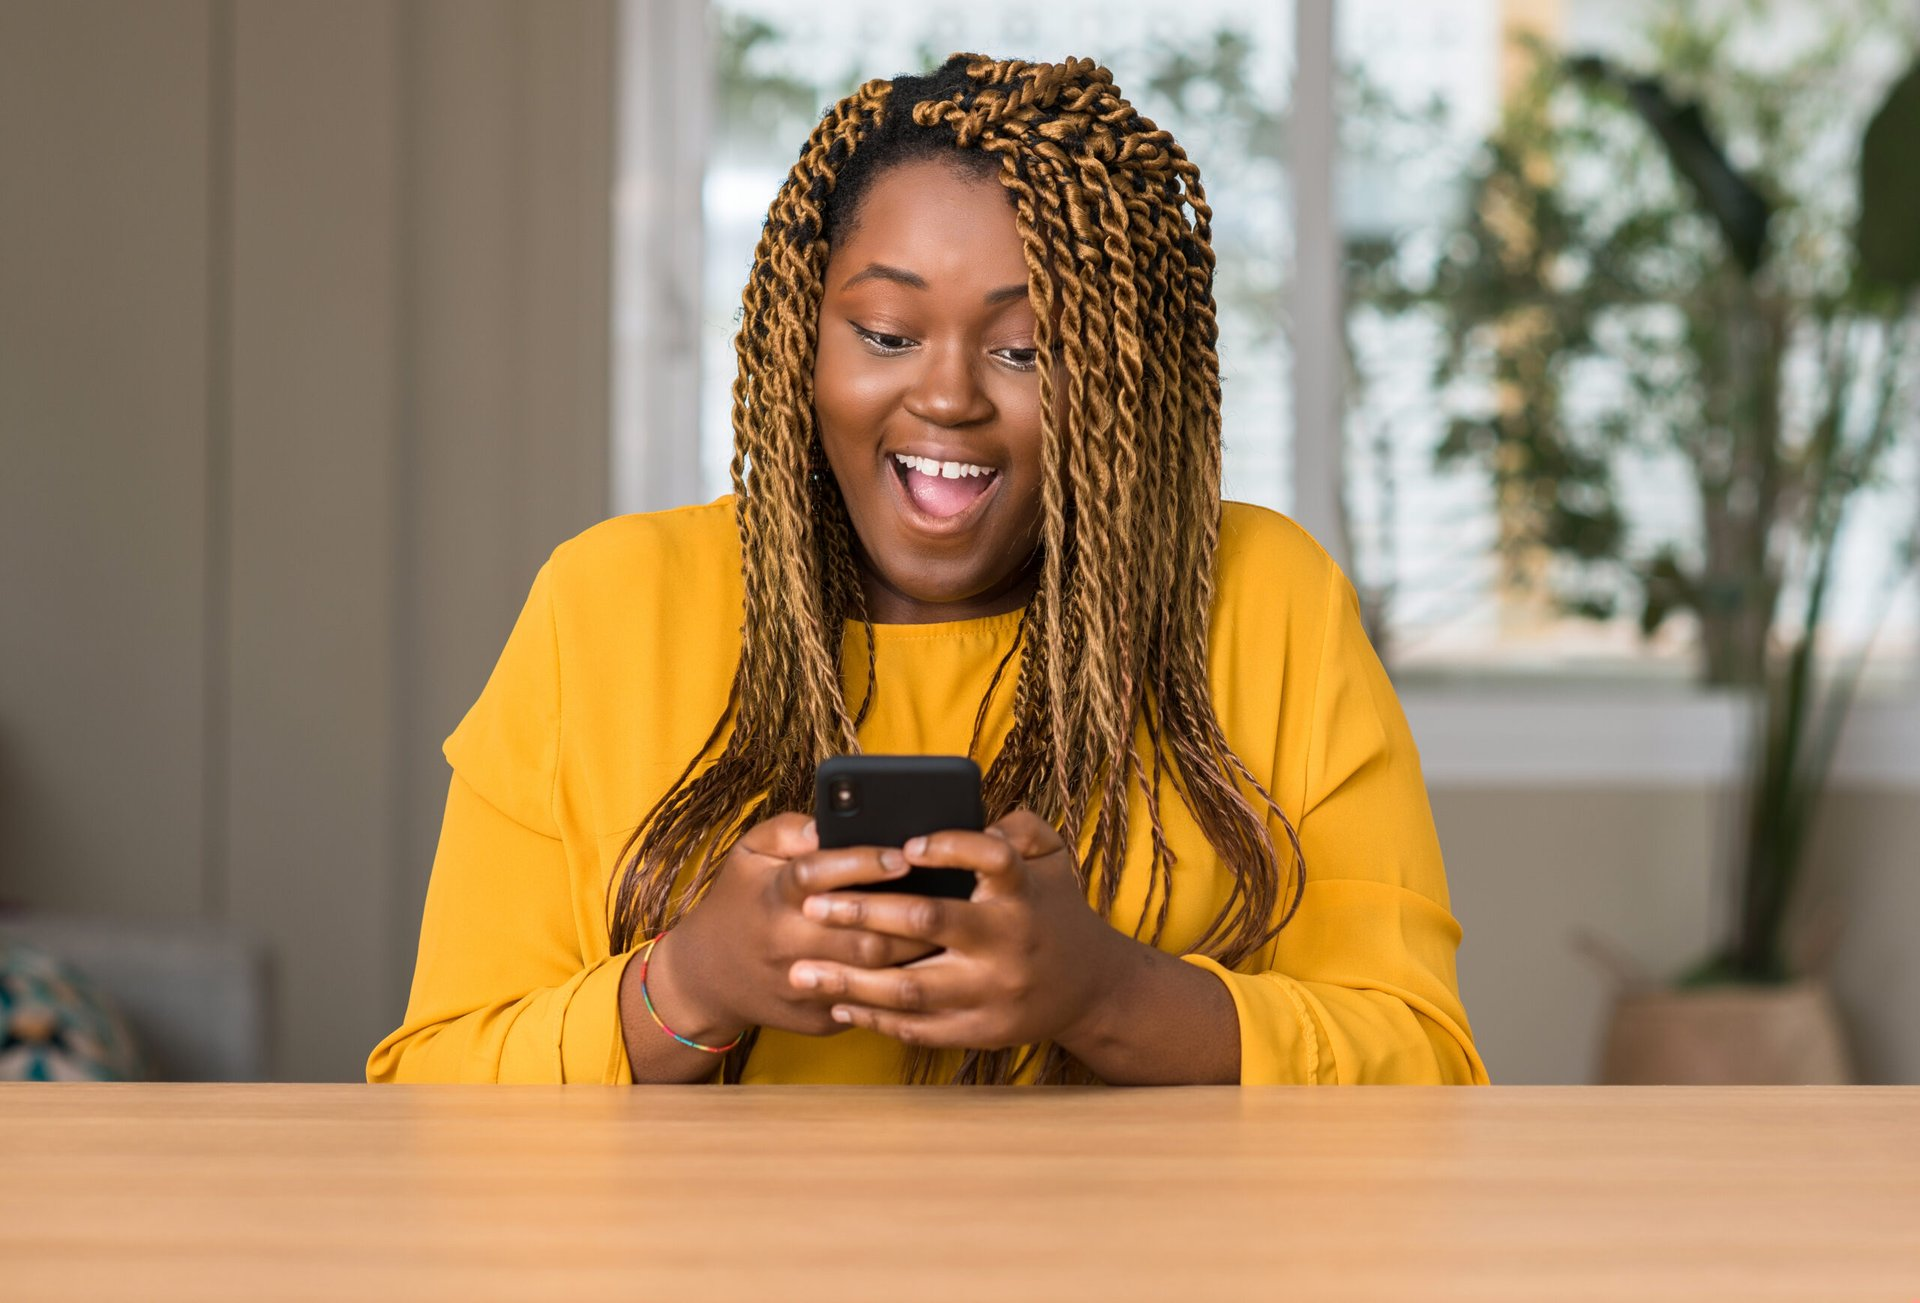 Excited woman looking at her phone